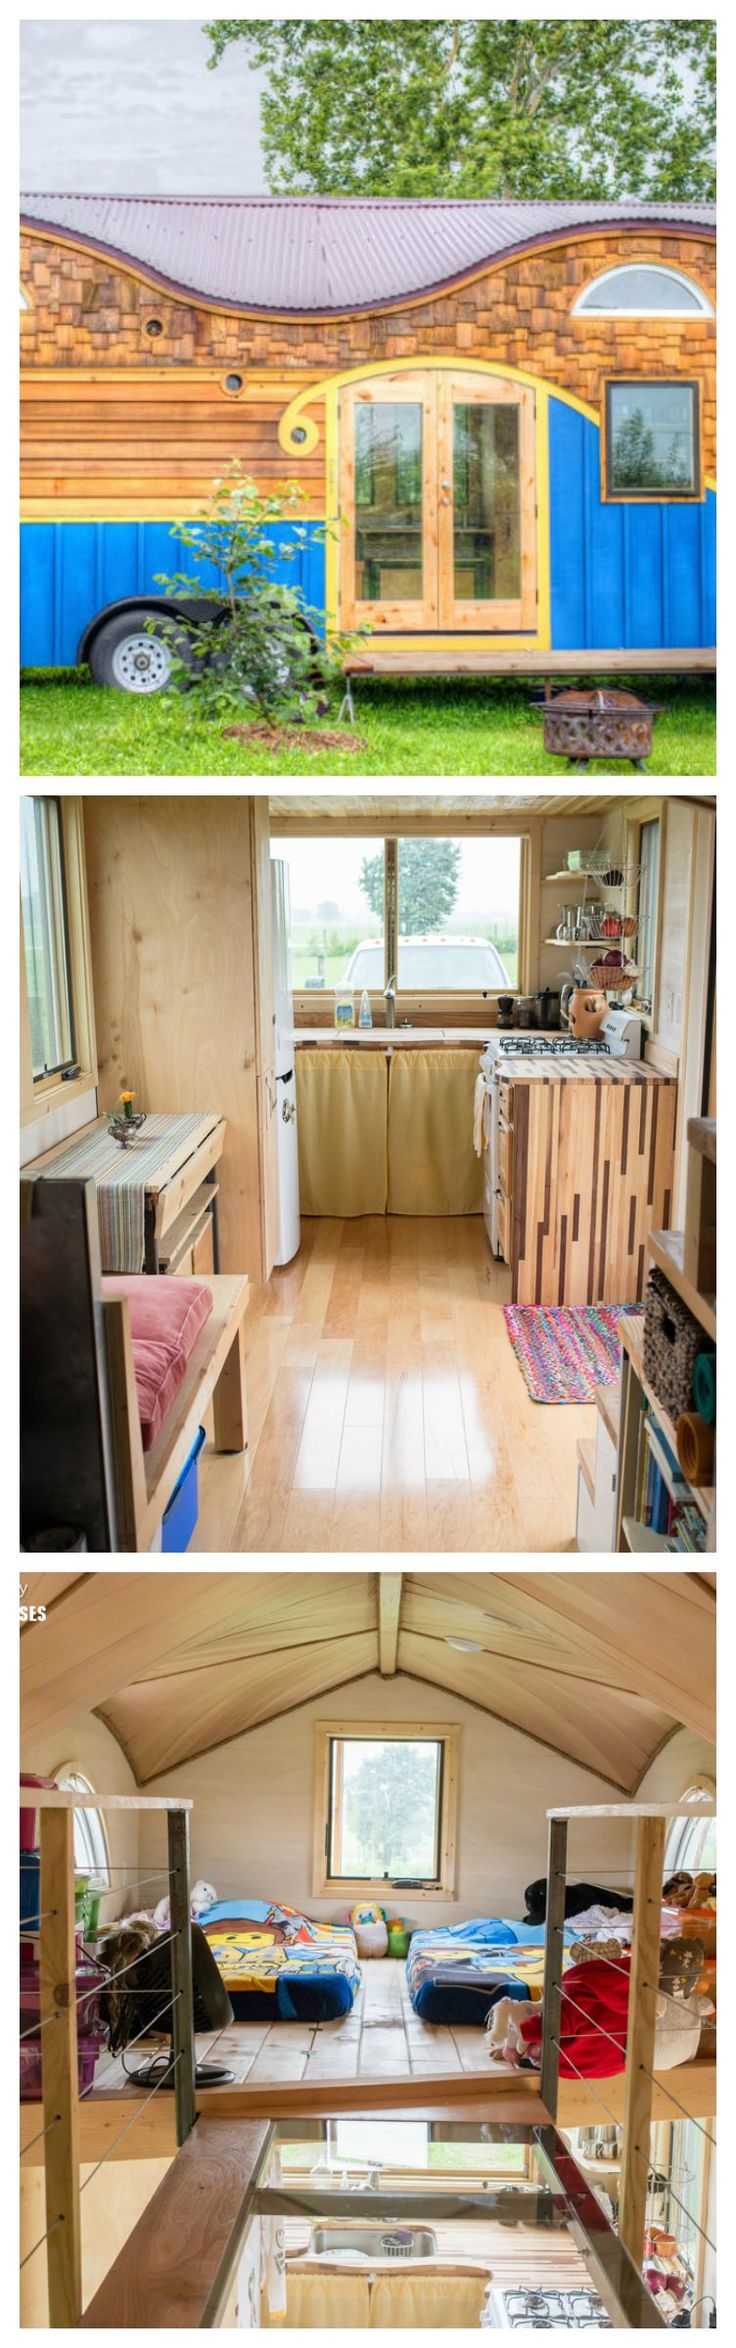 This Quirky House Proves That Tiny Living Can Work For Families, Too